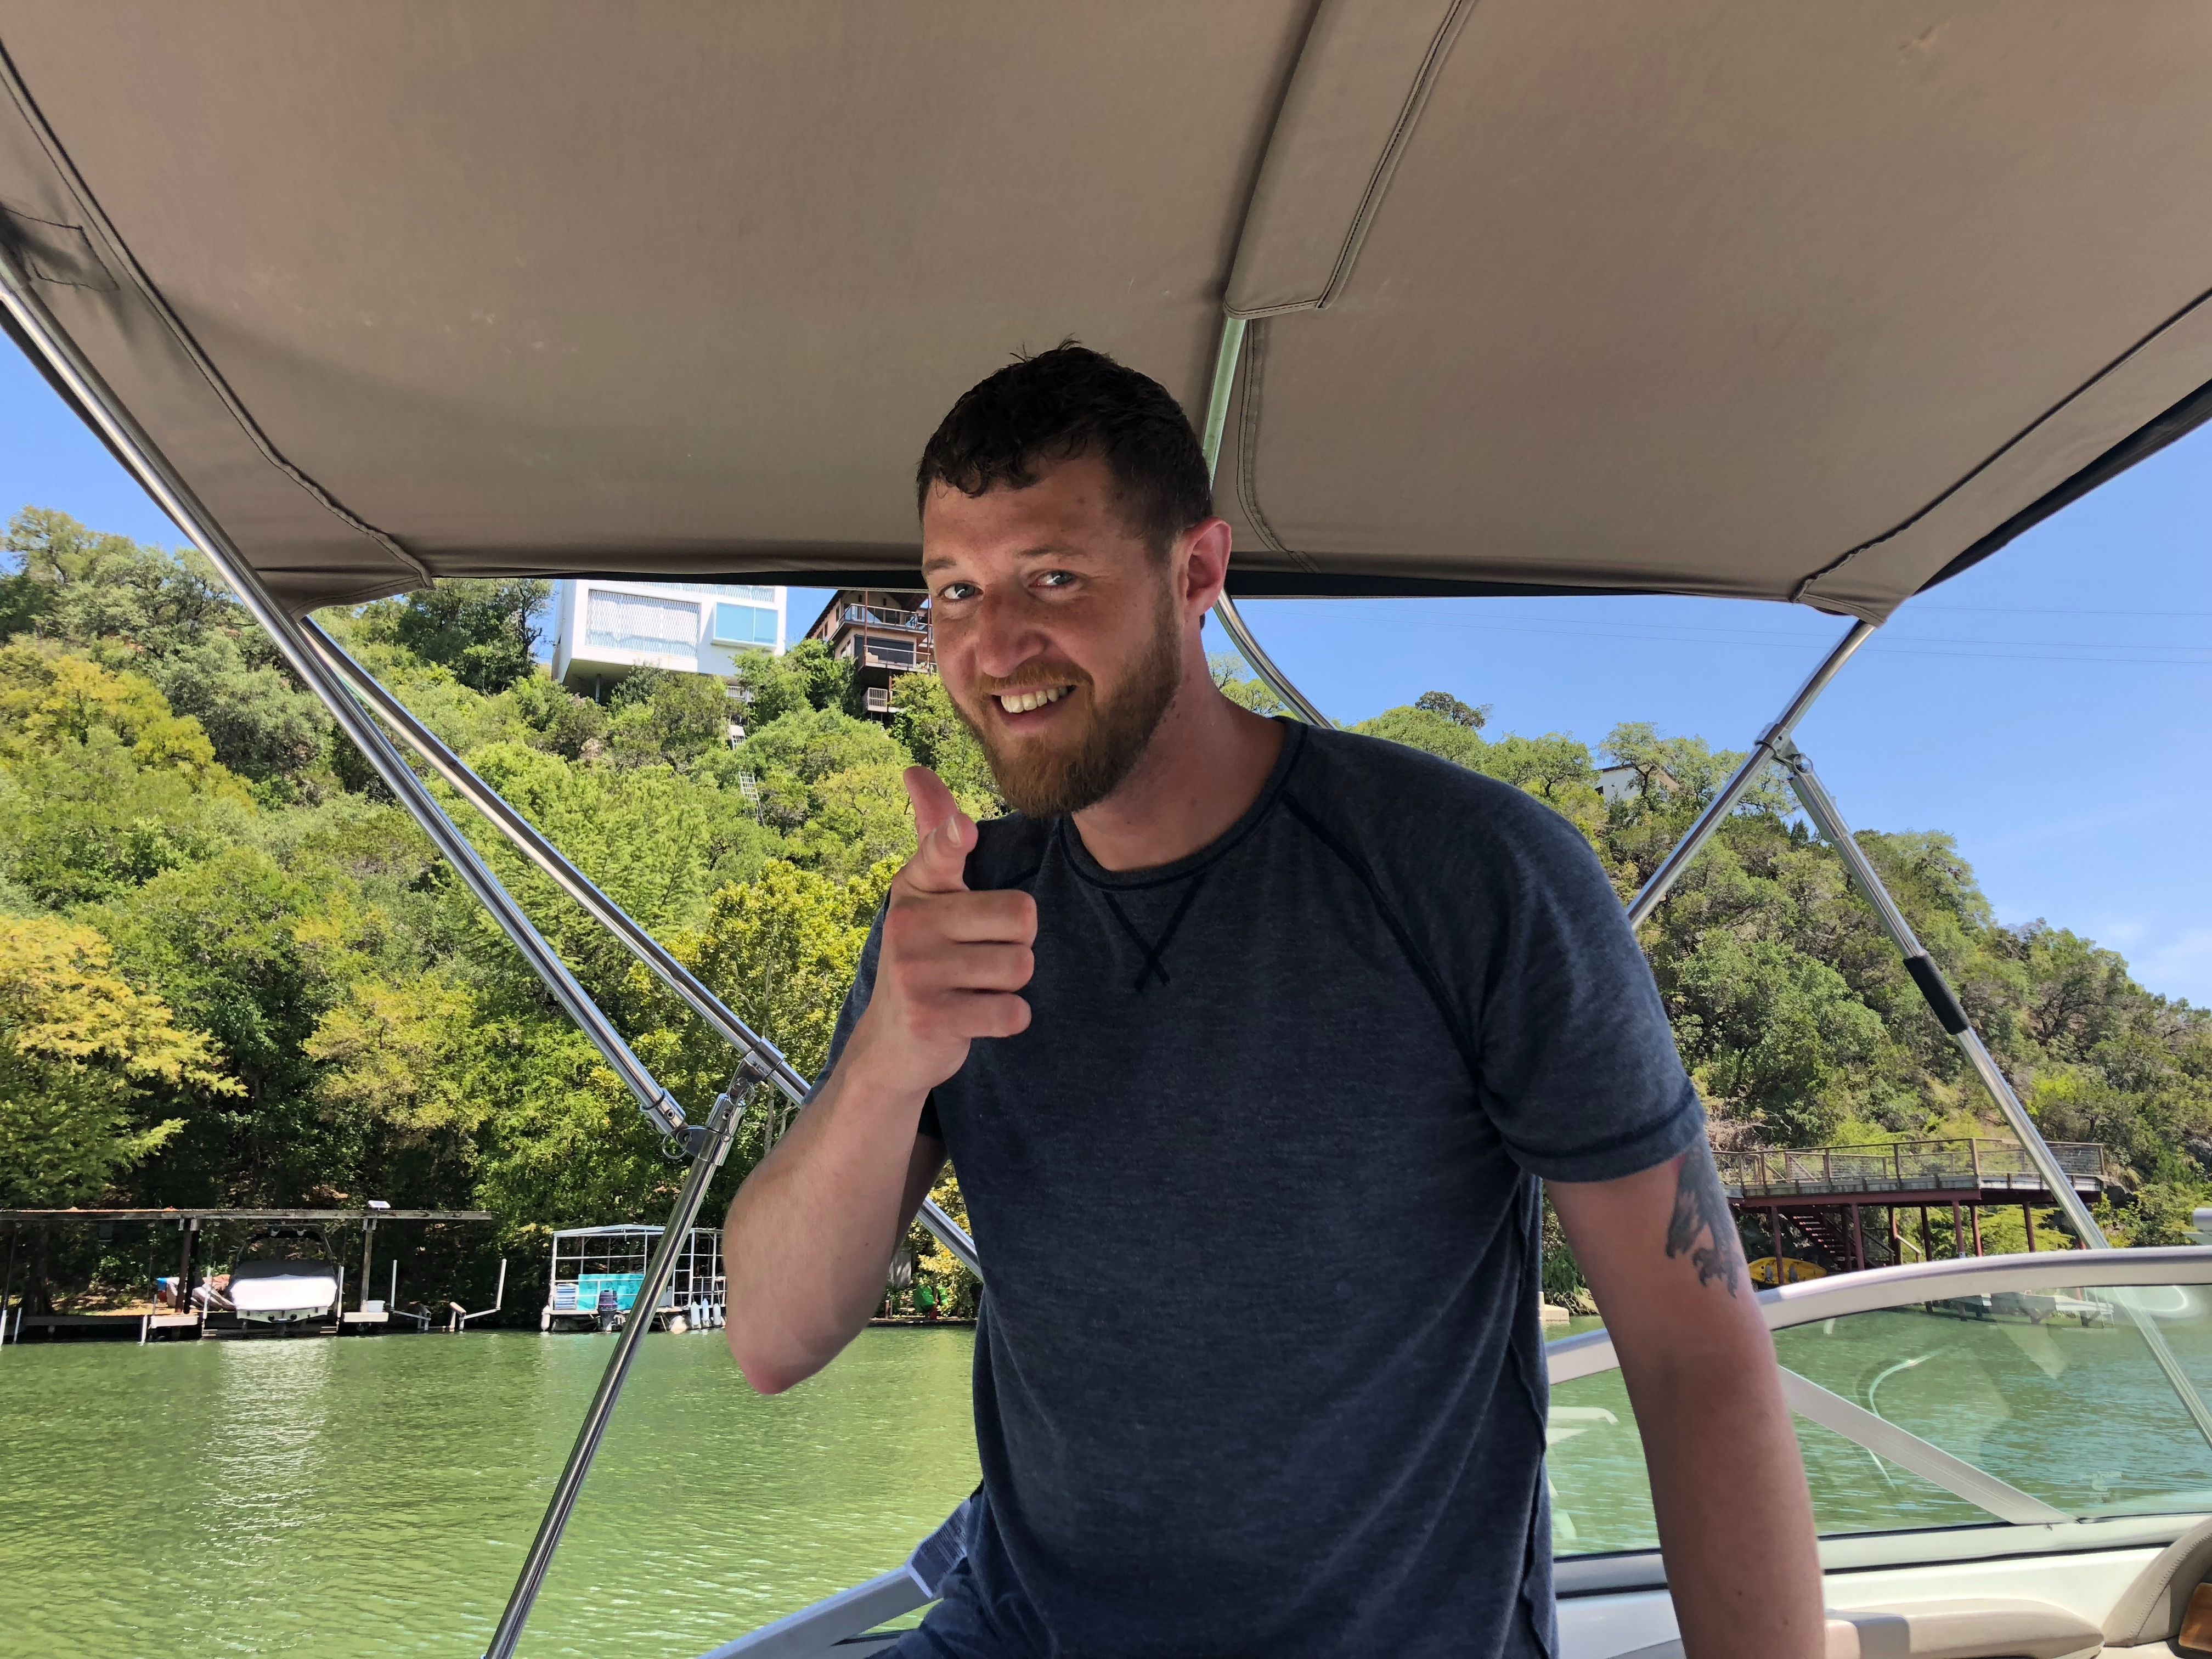 Captain Luke Lake Austin Boat Rental